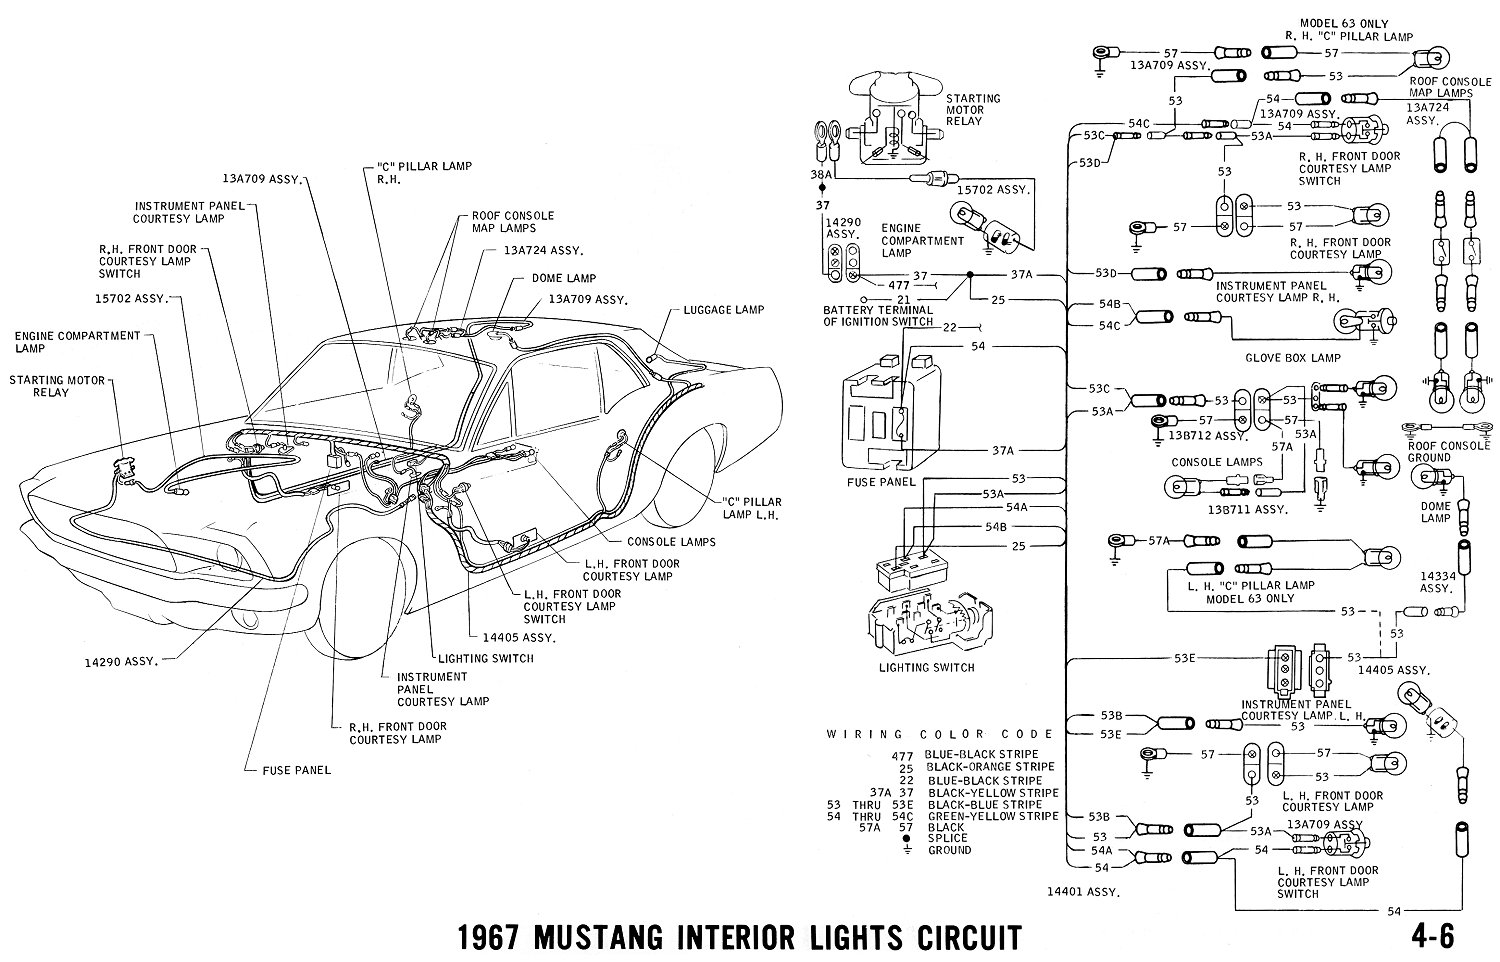 hight resolution of 1967 ford mustang painless wiring diagram wiring diagram perfomance 1967 mustang alternator wiring harness 1967 mustang wiring harness